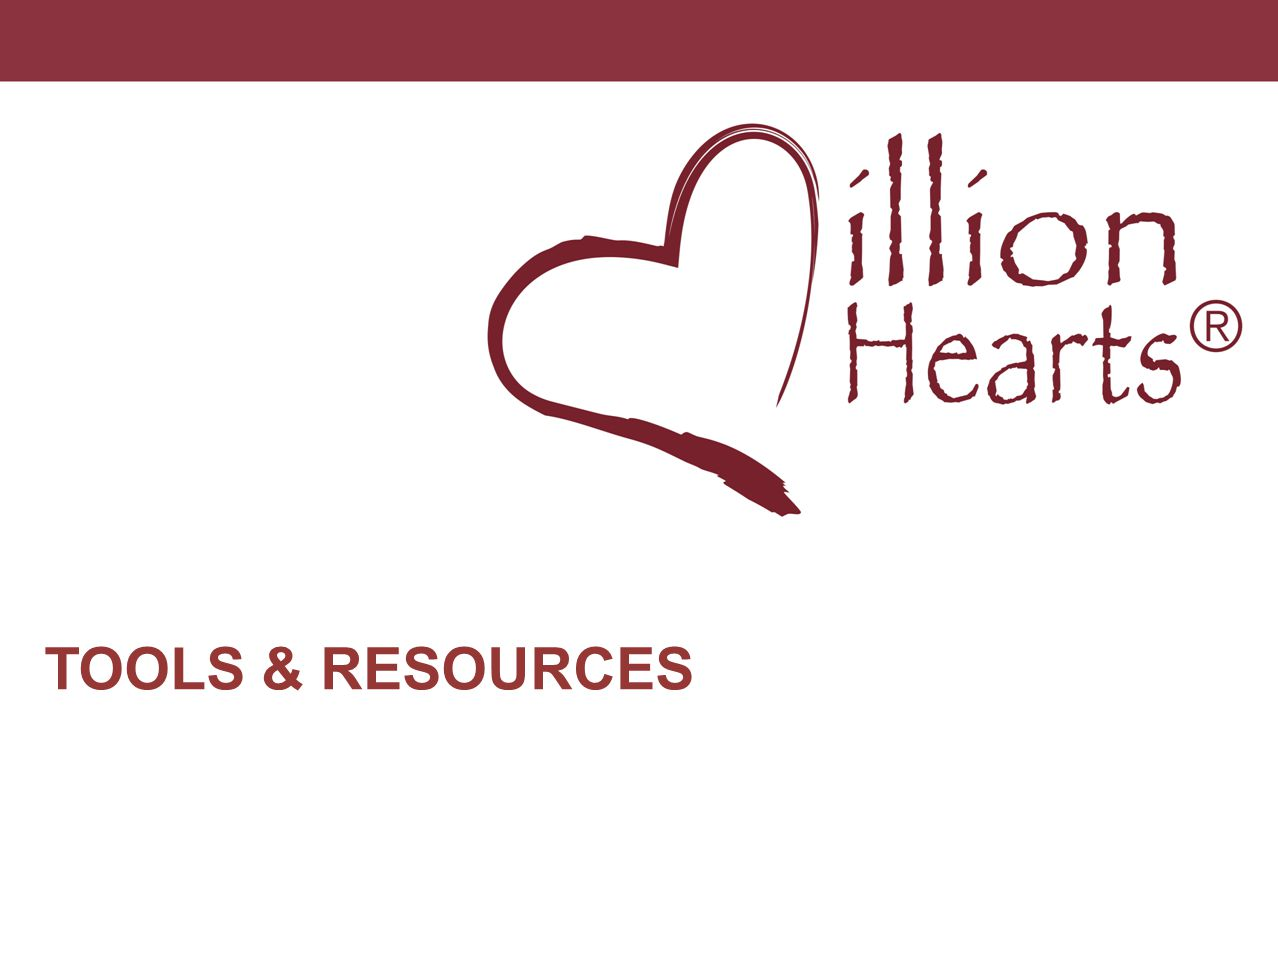 Million Hearts has a wide variety of resources for different type of audiences - Spanish, Faith-based, clinician community;